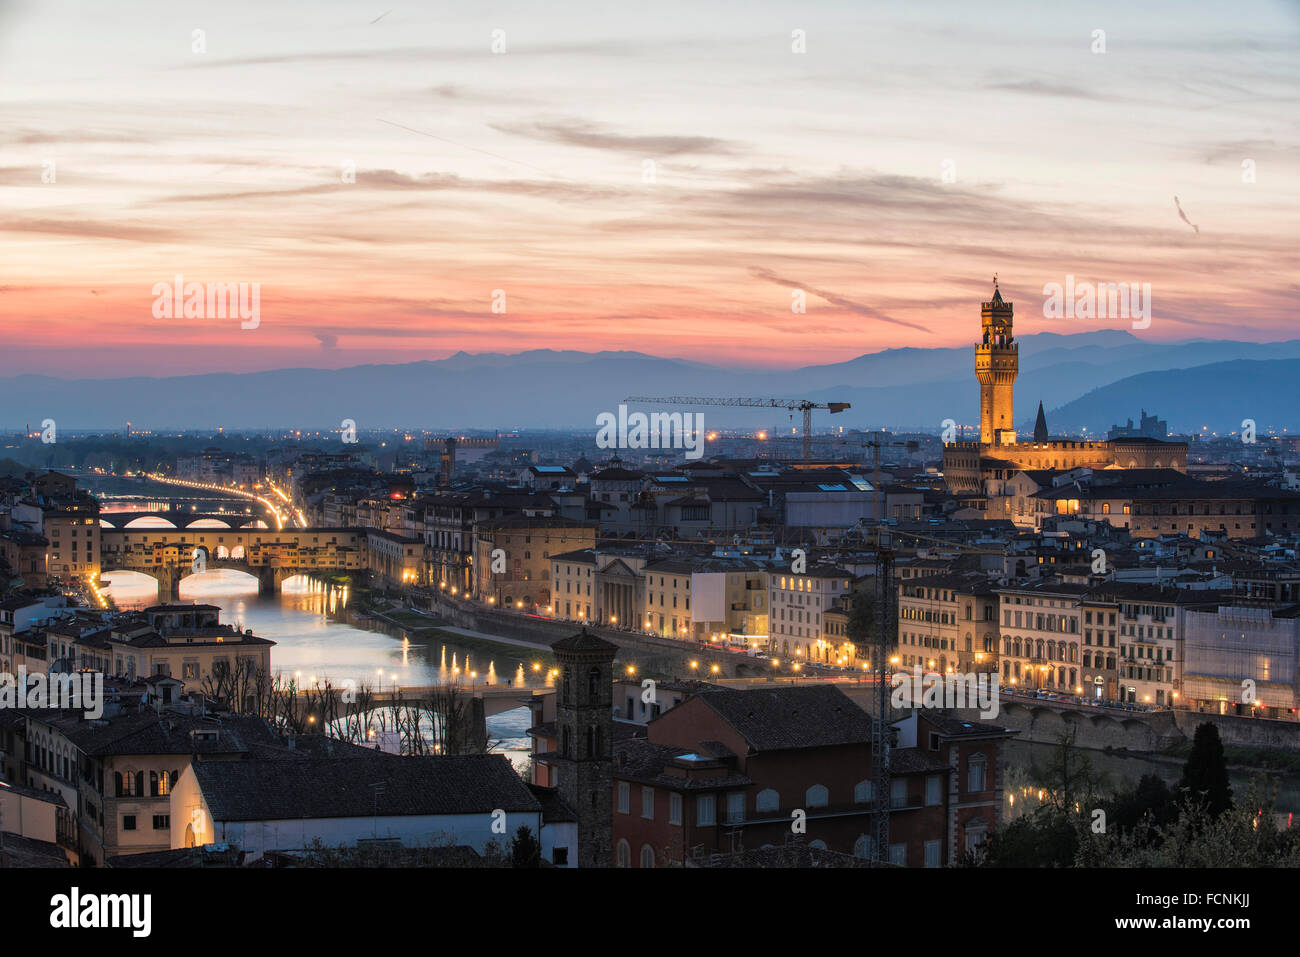 A picture postcard of Florence panorama just after sunset with the skyline of its famous monuments and River Arno - Stock Image